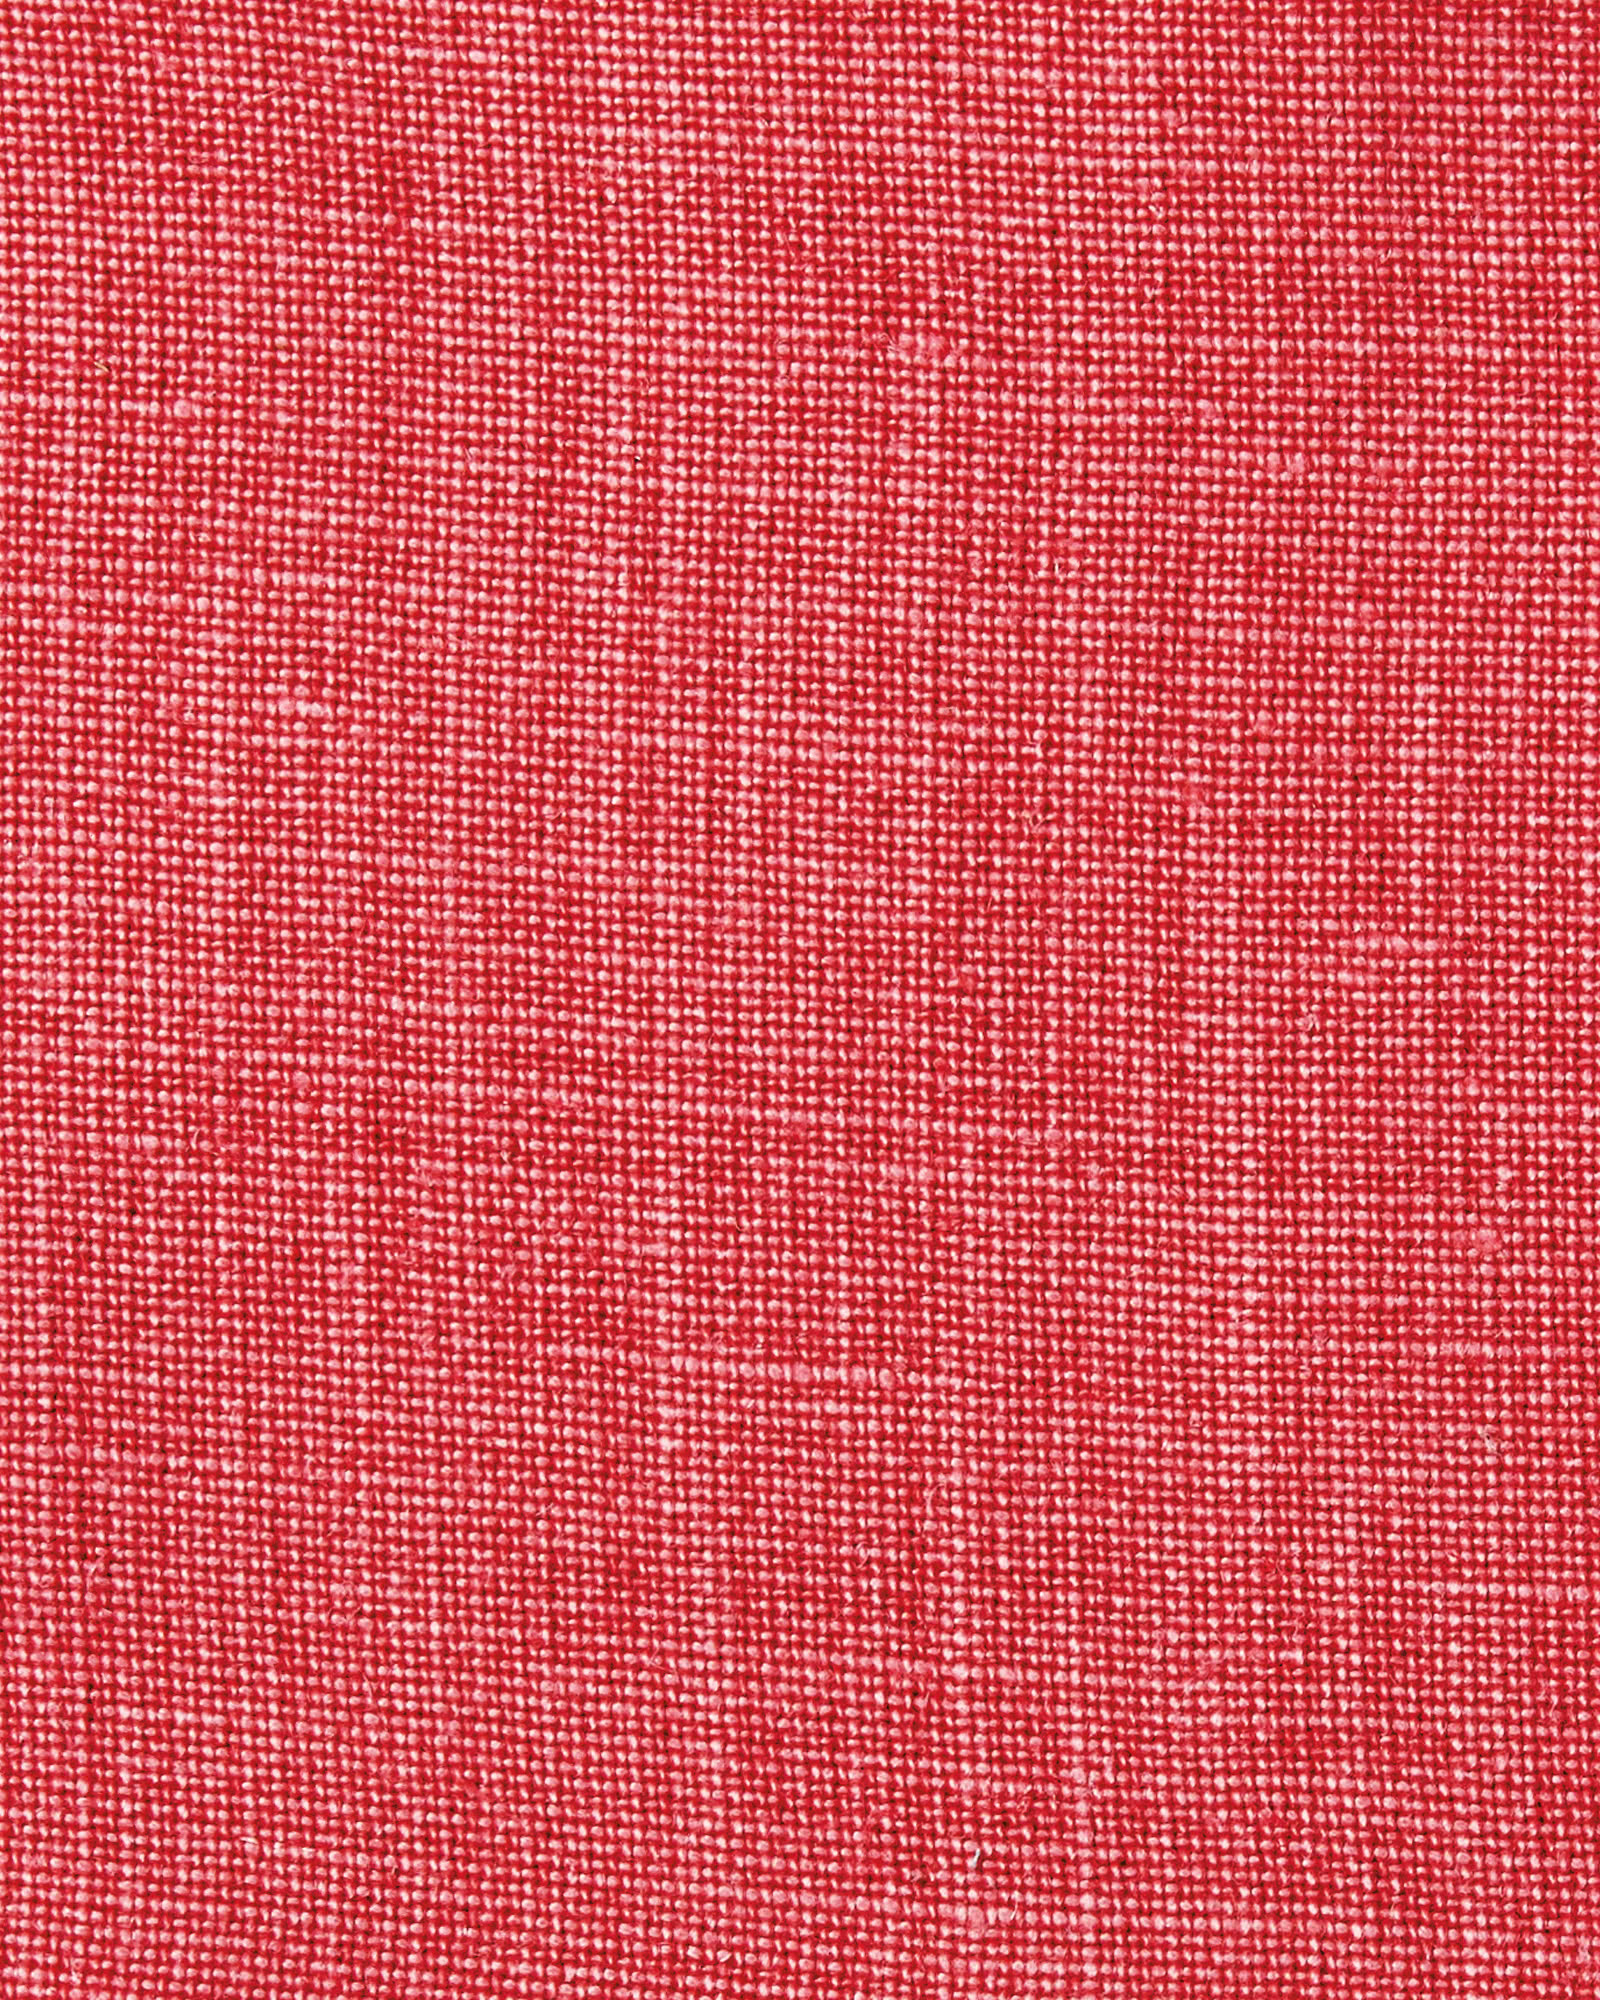 Fabric by the Yard – Washed Linen Fabric, Red